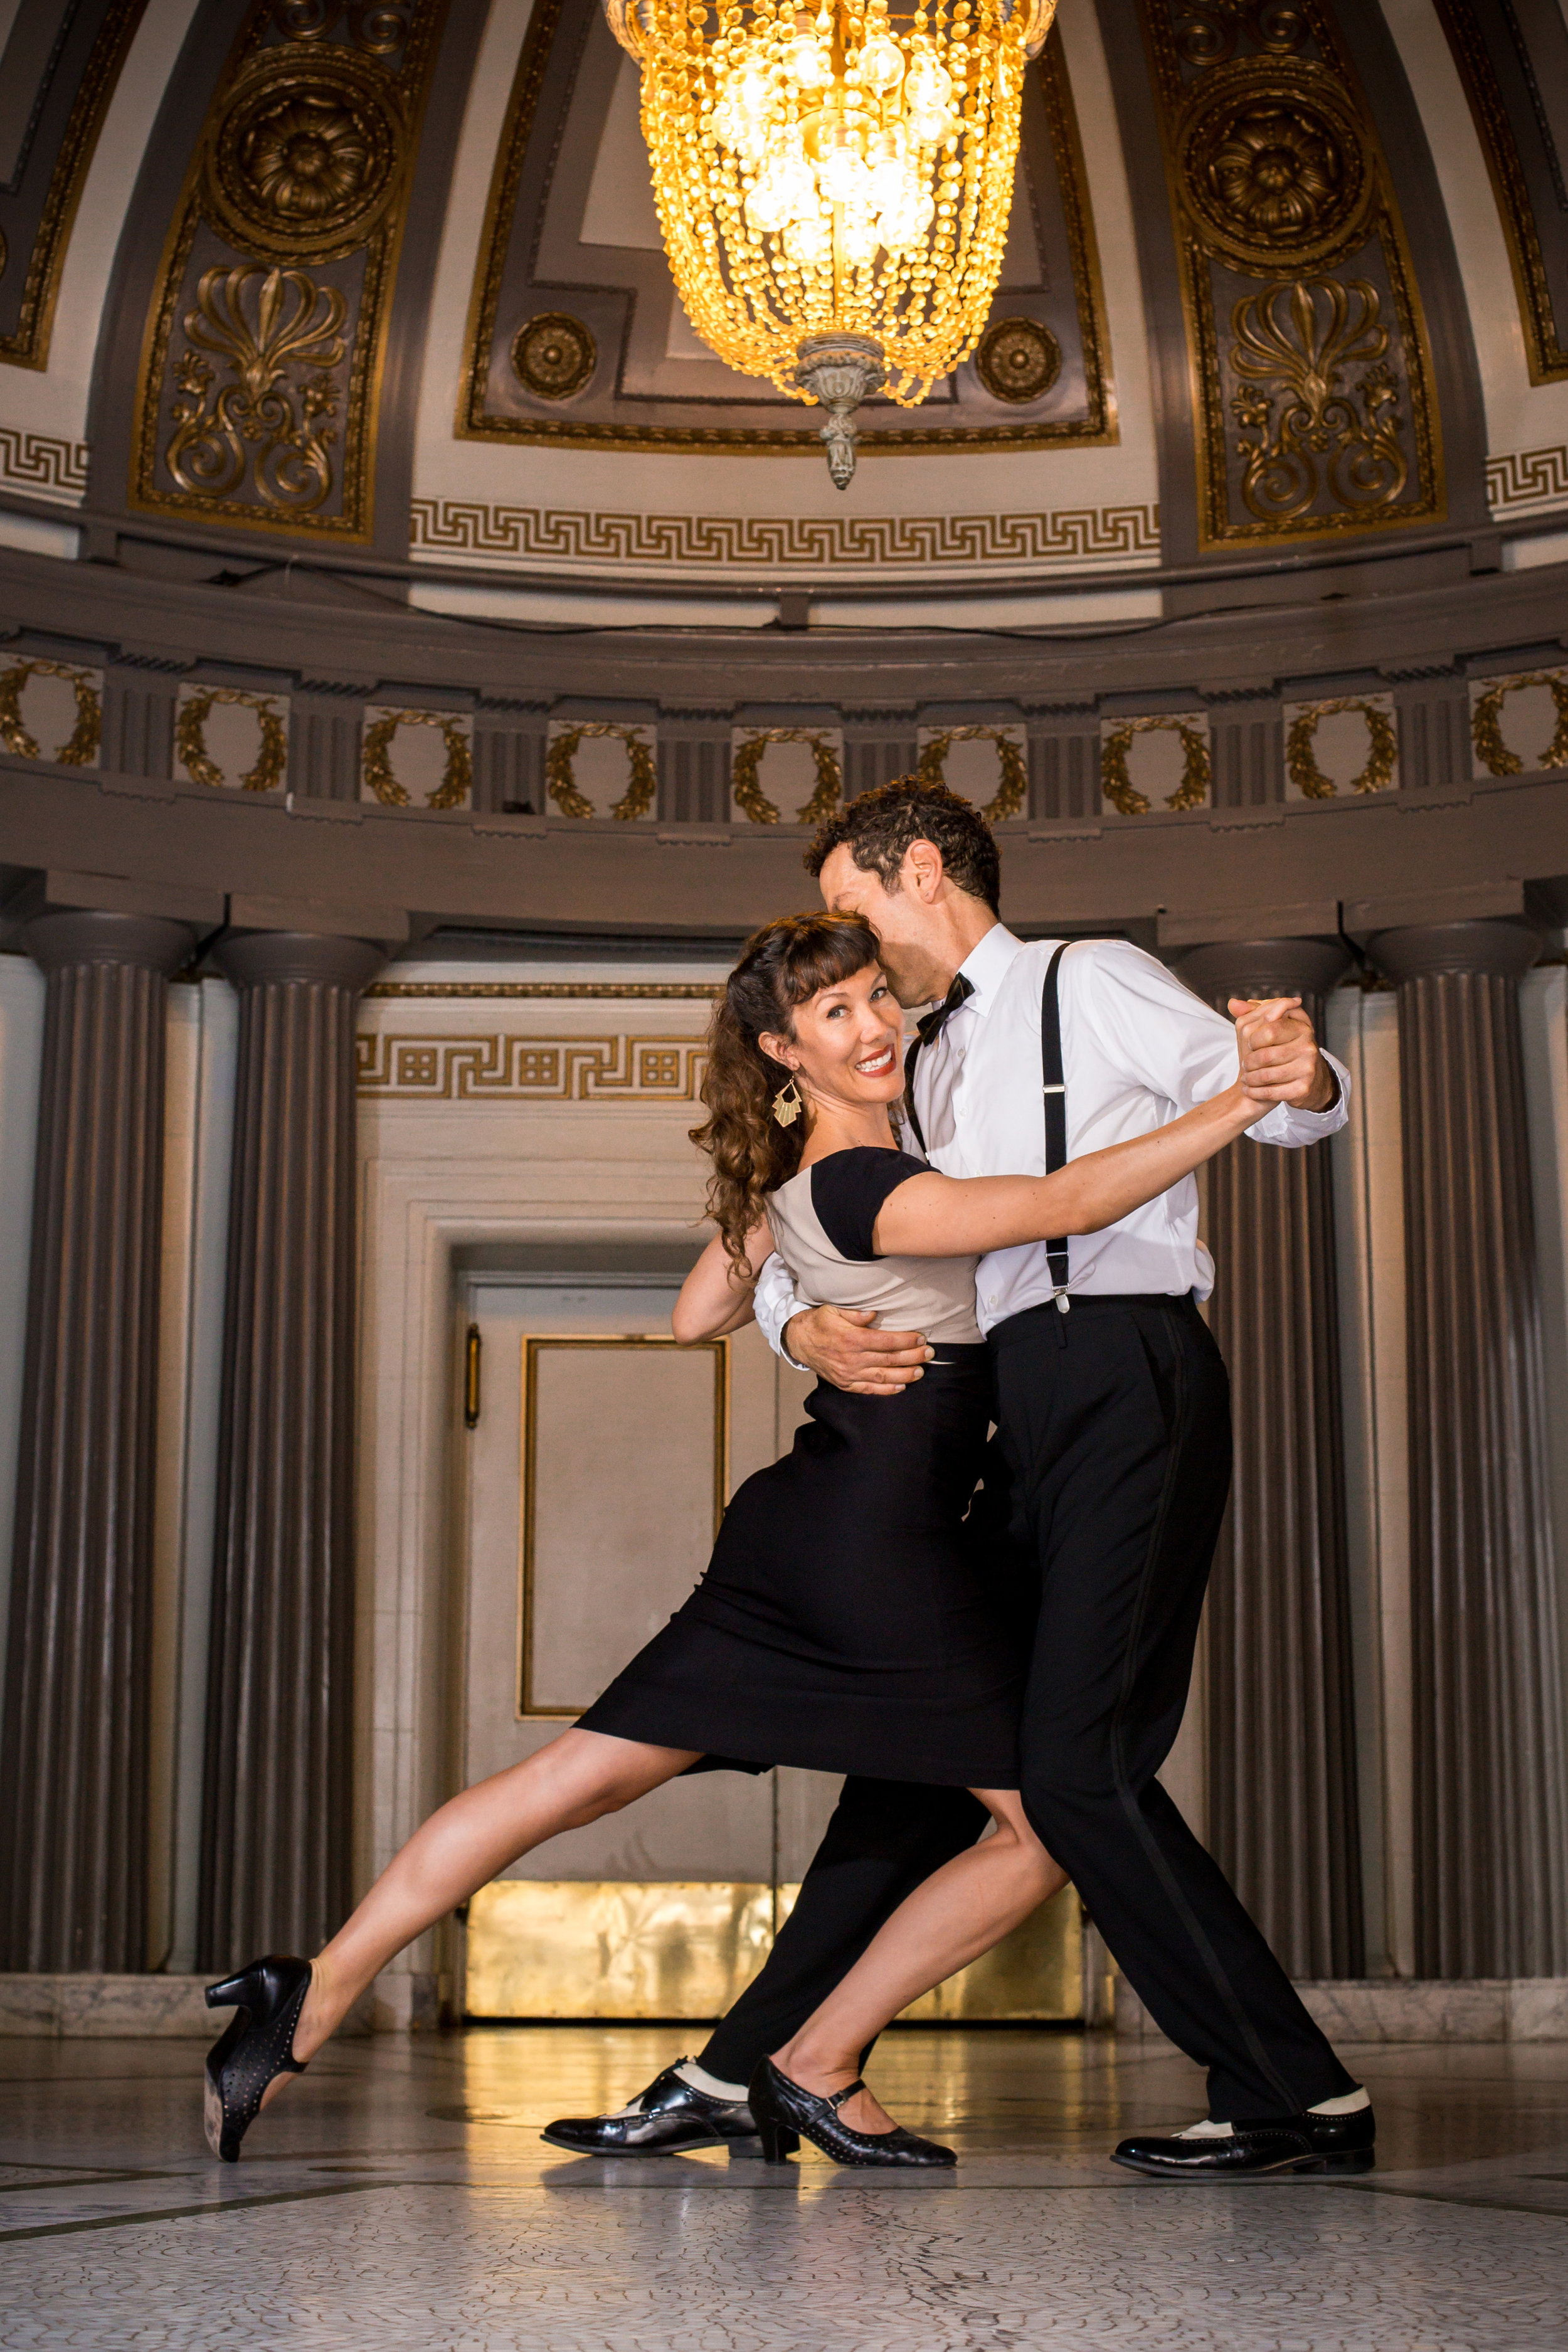 THE LINDY HOP BASICS // 2-PART WORKSHOP // FEBRUARY 4 & 11 // FROM 10:30AM TO 12NOON. - LEARN OR REFINE THE BASICSLEARN THE FUNDAMENTALS OF LINDY HOP. THIS 2-PART WORKSHOP IS FOR ANYONE WHO WANTS TO LEARN THE BASICS OF LINDY HOP. IN THIS WORKSHOP, YOU WILL LEARN THE SWING OUT FROM OPEN, SWING OUT FROM CLOSED, LINDY CIRCLE, SUGAR PUSH, FOLLOWERS INSIDE TURN, FOLLOWERS OUTSIDE TURN, FOLLOWERS FREE SPIN, AND MORE! NO DANCE EXPERIENCE NEEDED, AND ALL AGES ARE WELCOME. THIS IS THE CLASS NEEDED TO JOIN MY THURSDAY, 6PM, MIXED LEVELS LINDY HOP GROUP CLASS! ONLY OFFERED 3 TIMES A YEAR. CLASSES ARE HELD IN BEAUTIFUL DOWNTOWN SAN ANSELMO AT 167 TUNSTEAD AVE. MUST SIGN UP IN ADVANCE BY EMAILING JASMINE HERE.Facebook Invite Here.